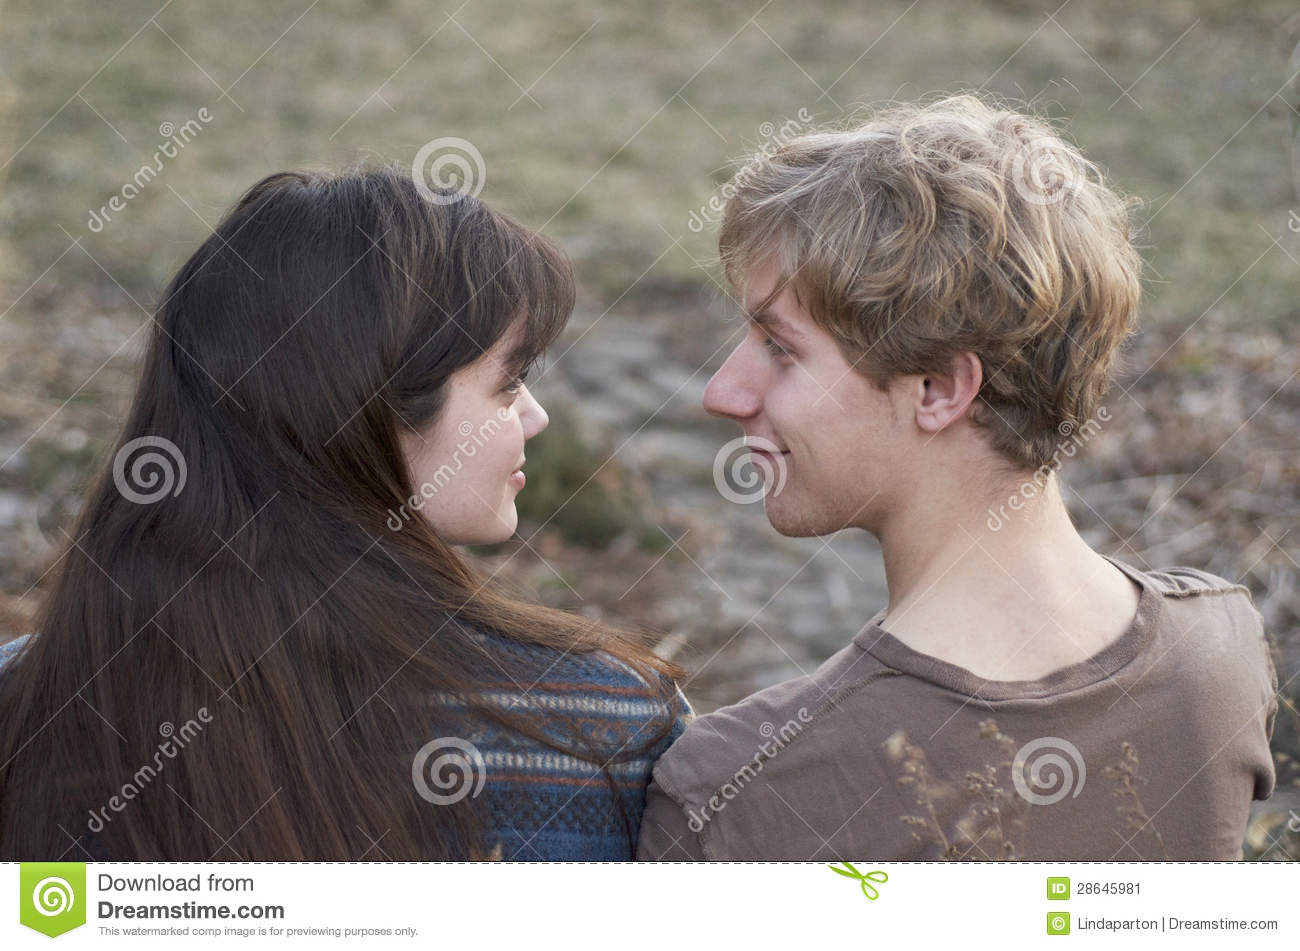 they looked at each other and It's when someone looks at you and breaks eye contact as they normally do, but they hold the eye contact for a split second longer than is normal it's the way two people look at each other when cuddling and making cutesy noises while rubbing their noses together.